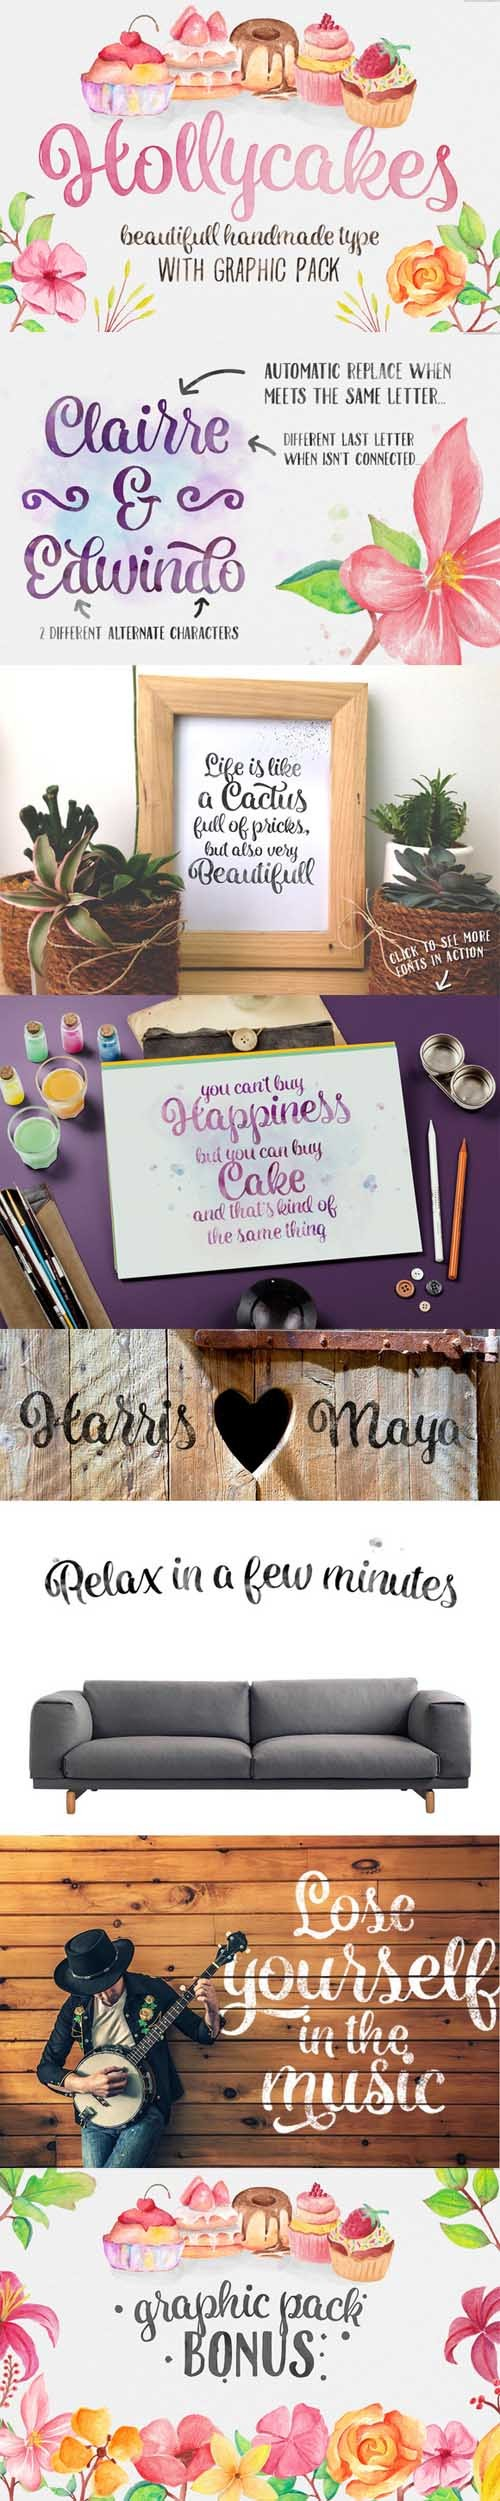 Hollycakes Fonts with Graphic Pack